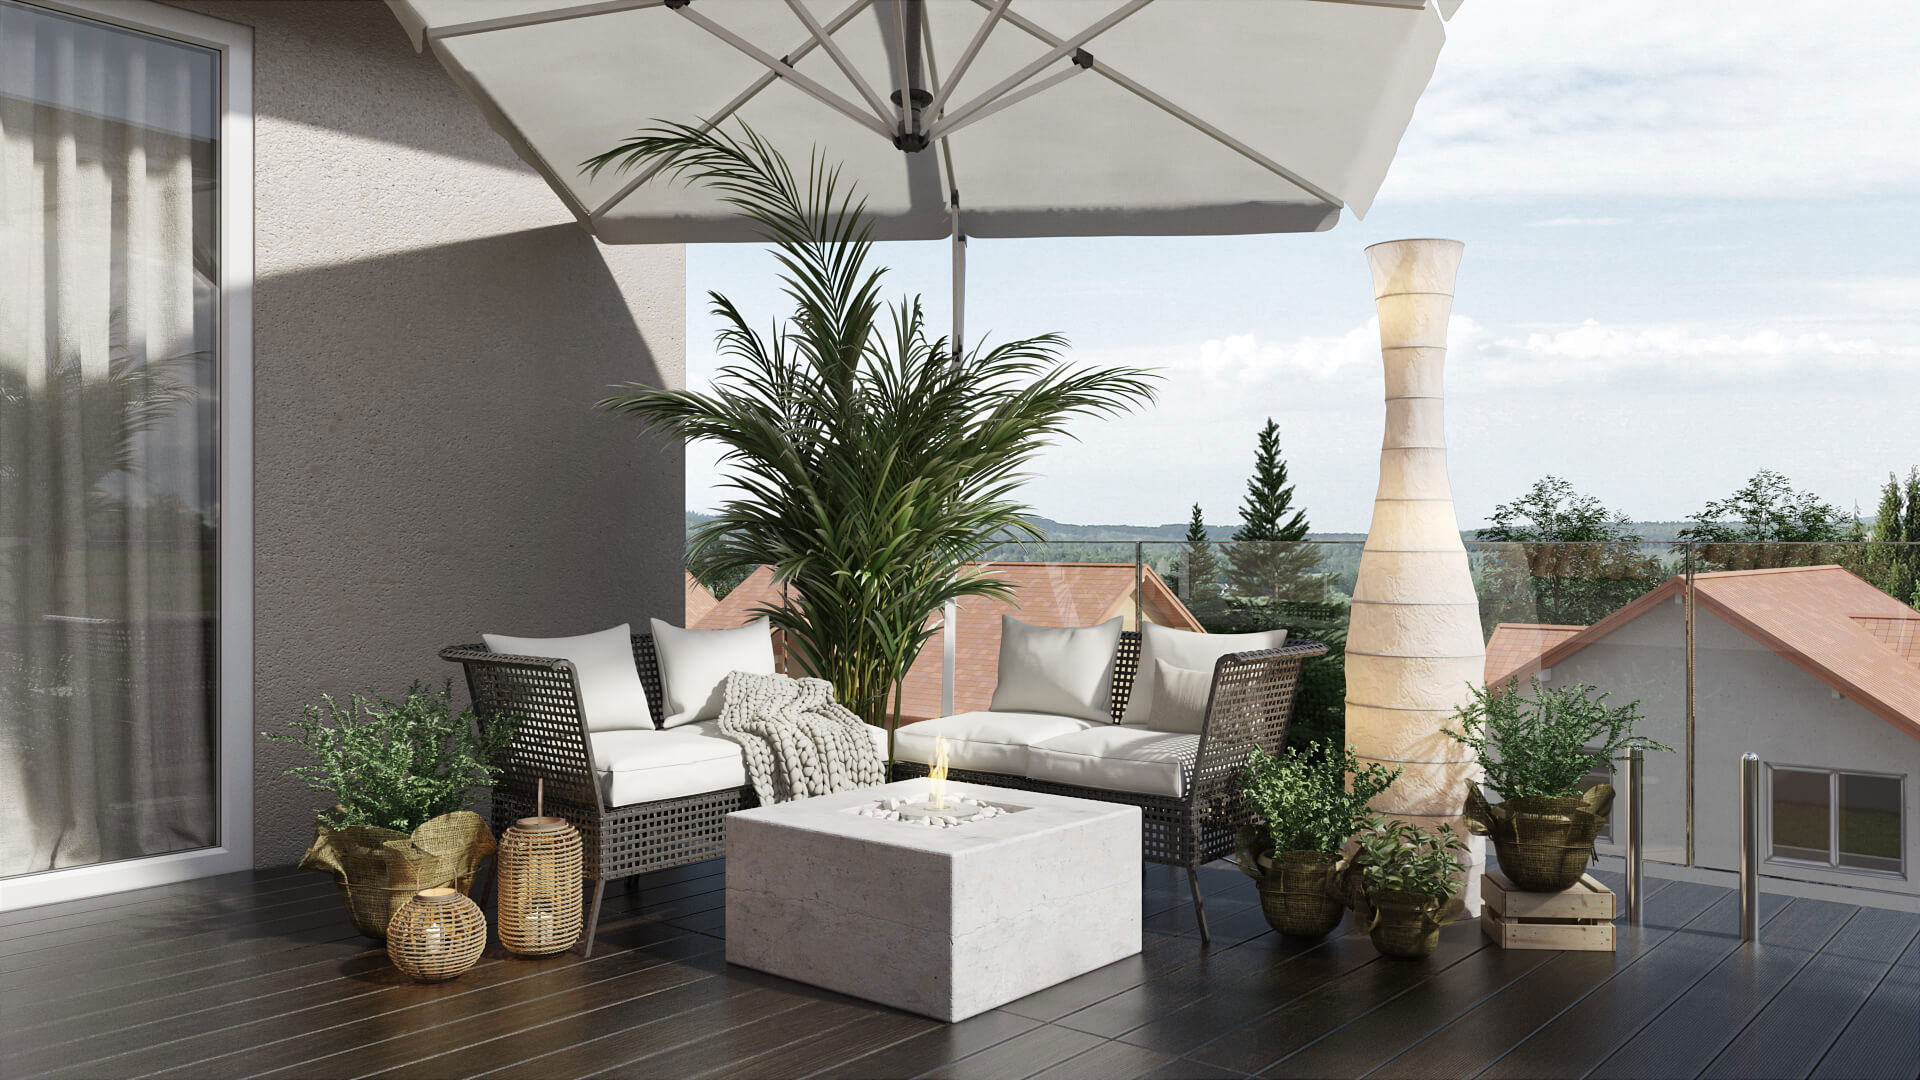 3D Modeling for an Outdoor Products with Modern Design